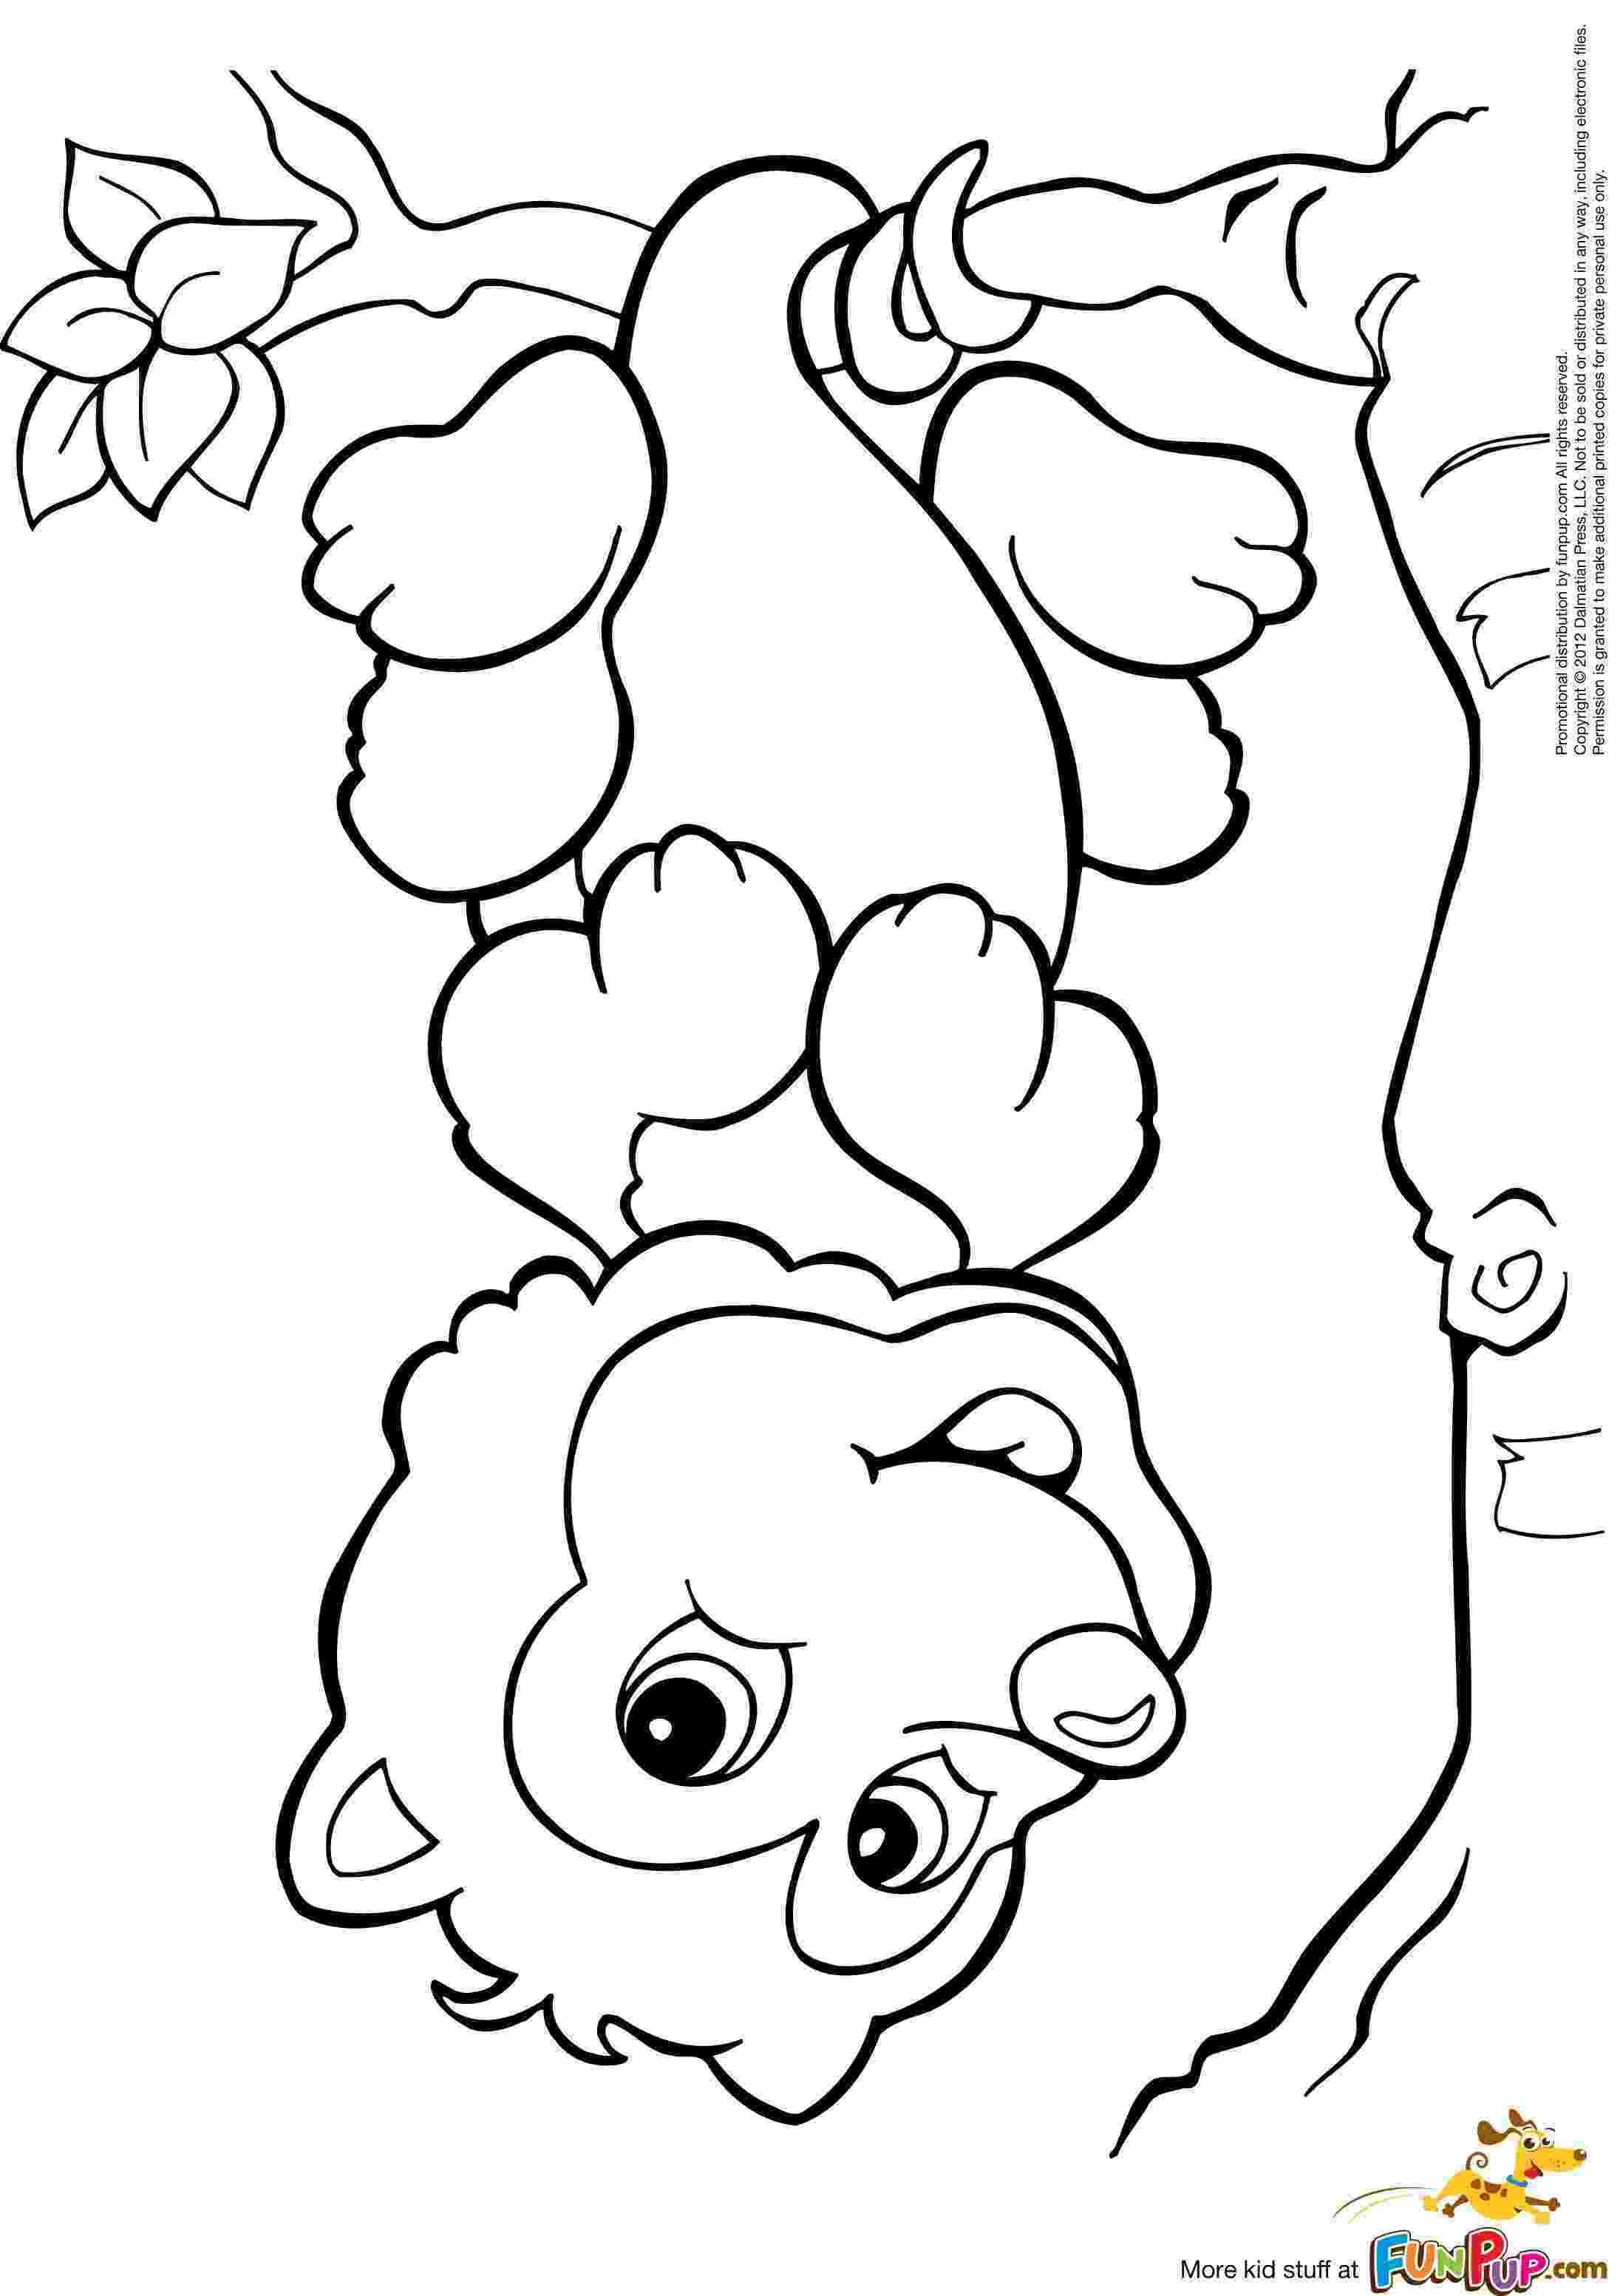 possum colouring pages possum coloring page free printable coloring pages possum colouring pages